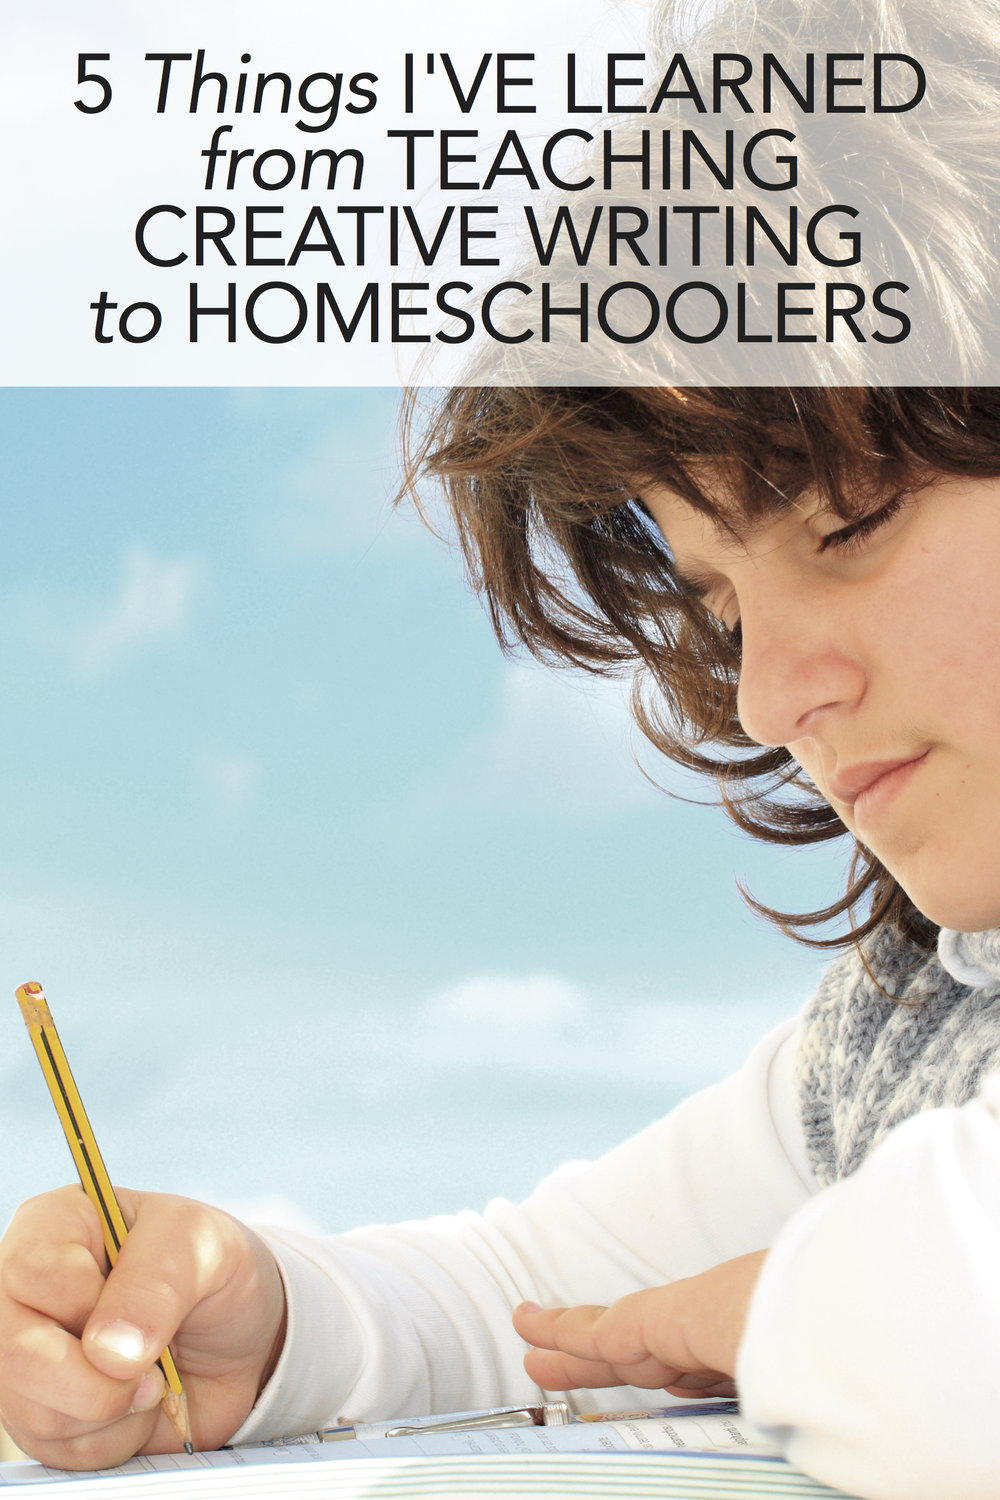 Great tips for teaching writing to homeschoolers. Number three gives me hope! #homeschool